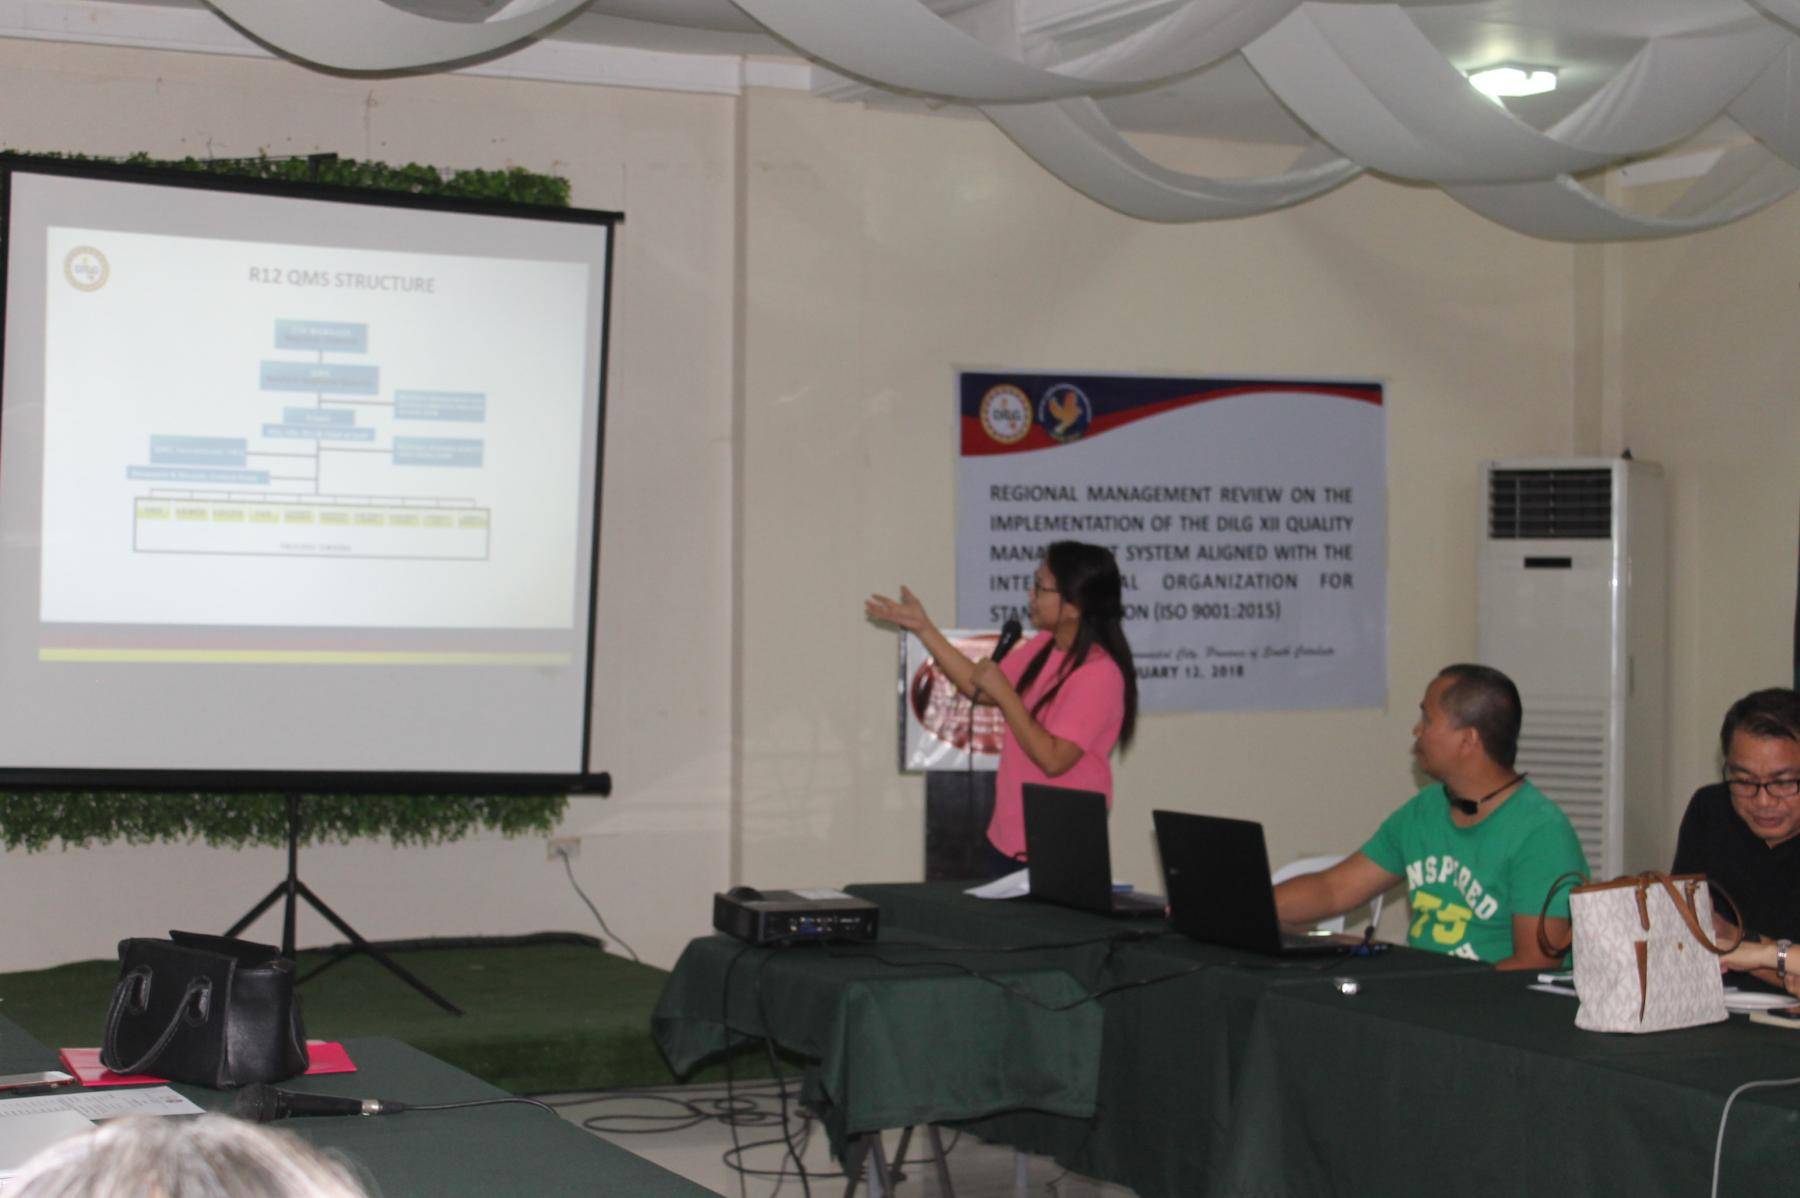 DILG XII Conducts Management Review on the Implementation of Quality